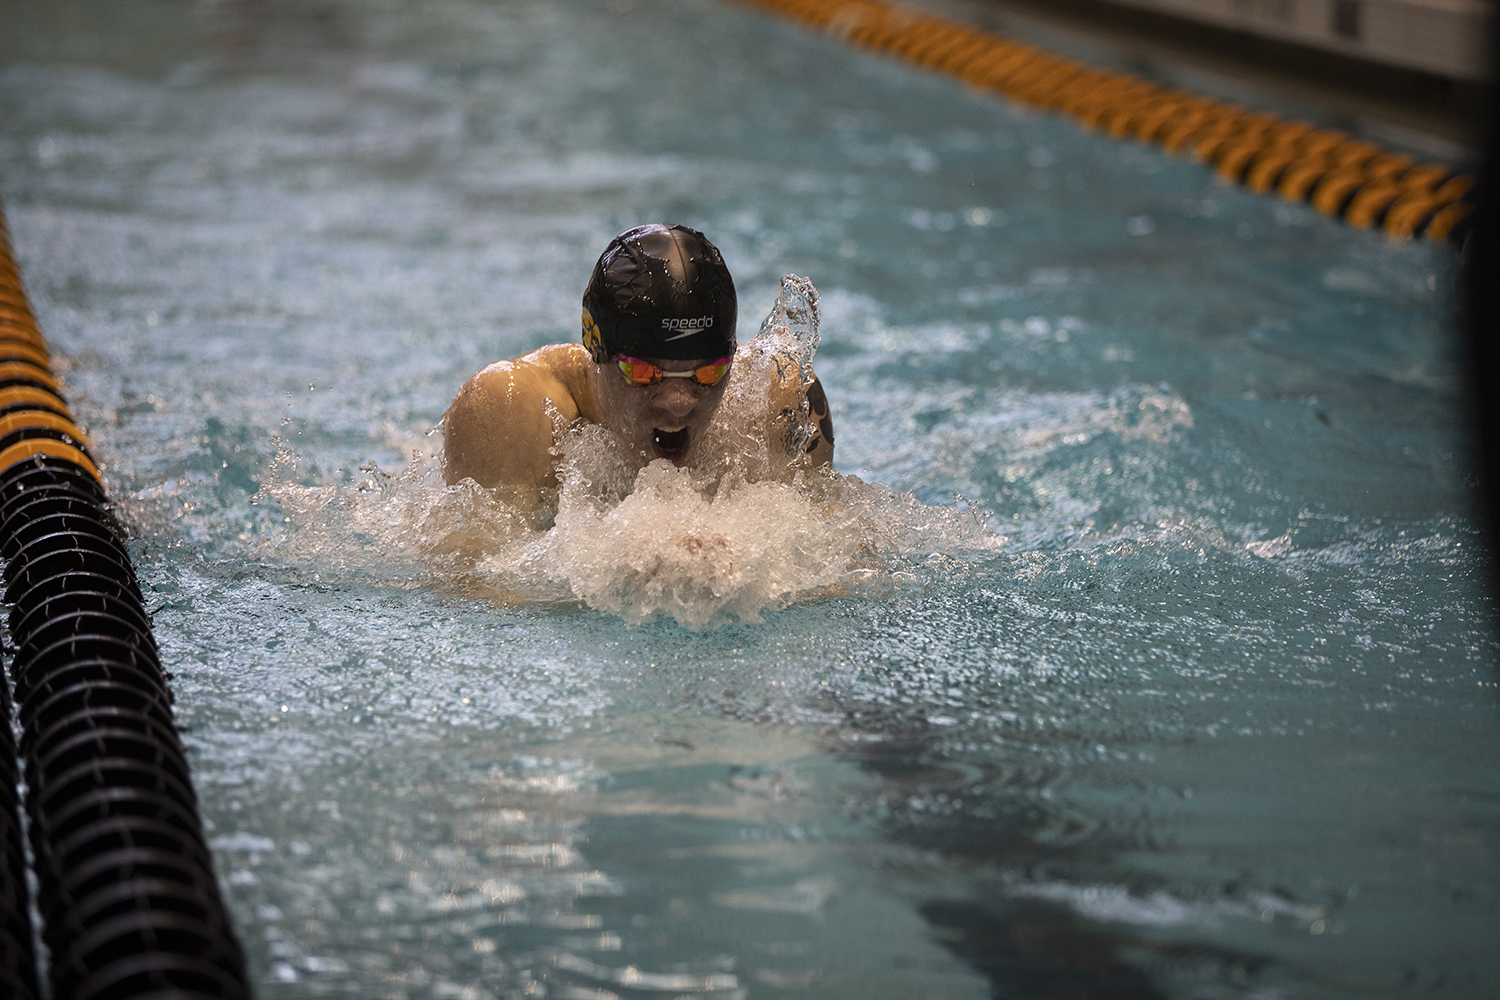 Iowa+senior+Tanner+Nelson+swims+the+100+breast+stroke+during+preliminary+competition+of+the+Big+10+Swimming+Championships+on+Friday%2C+March+1%2C+2019.+